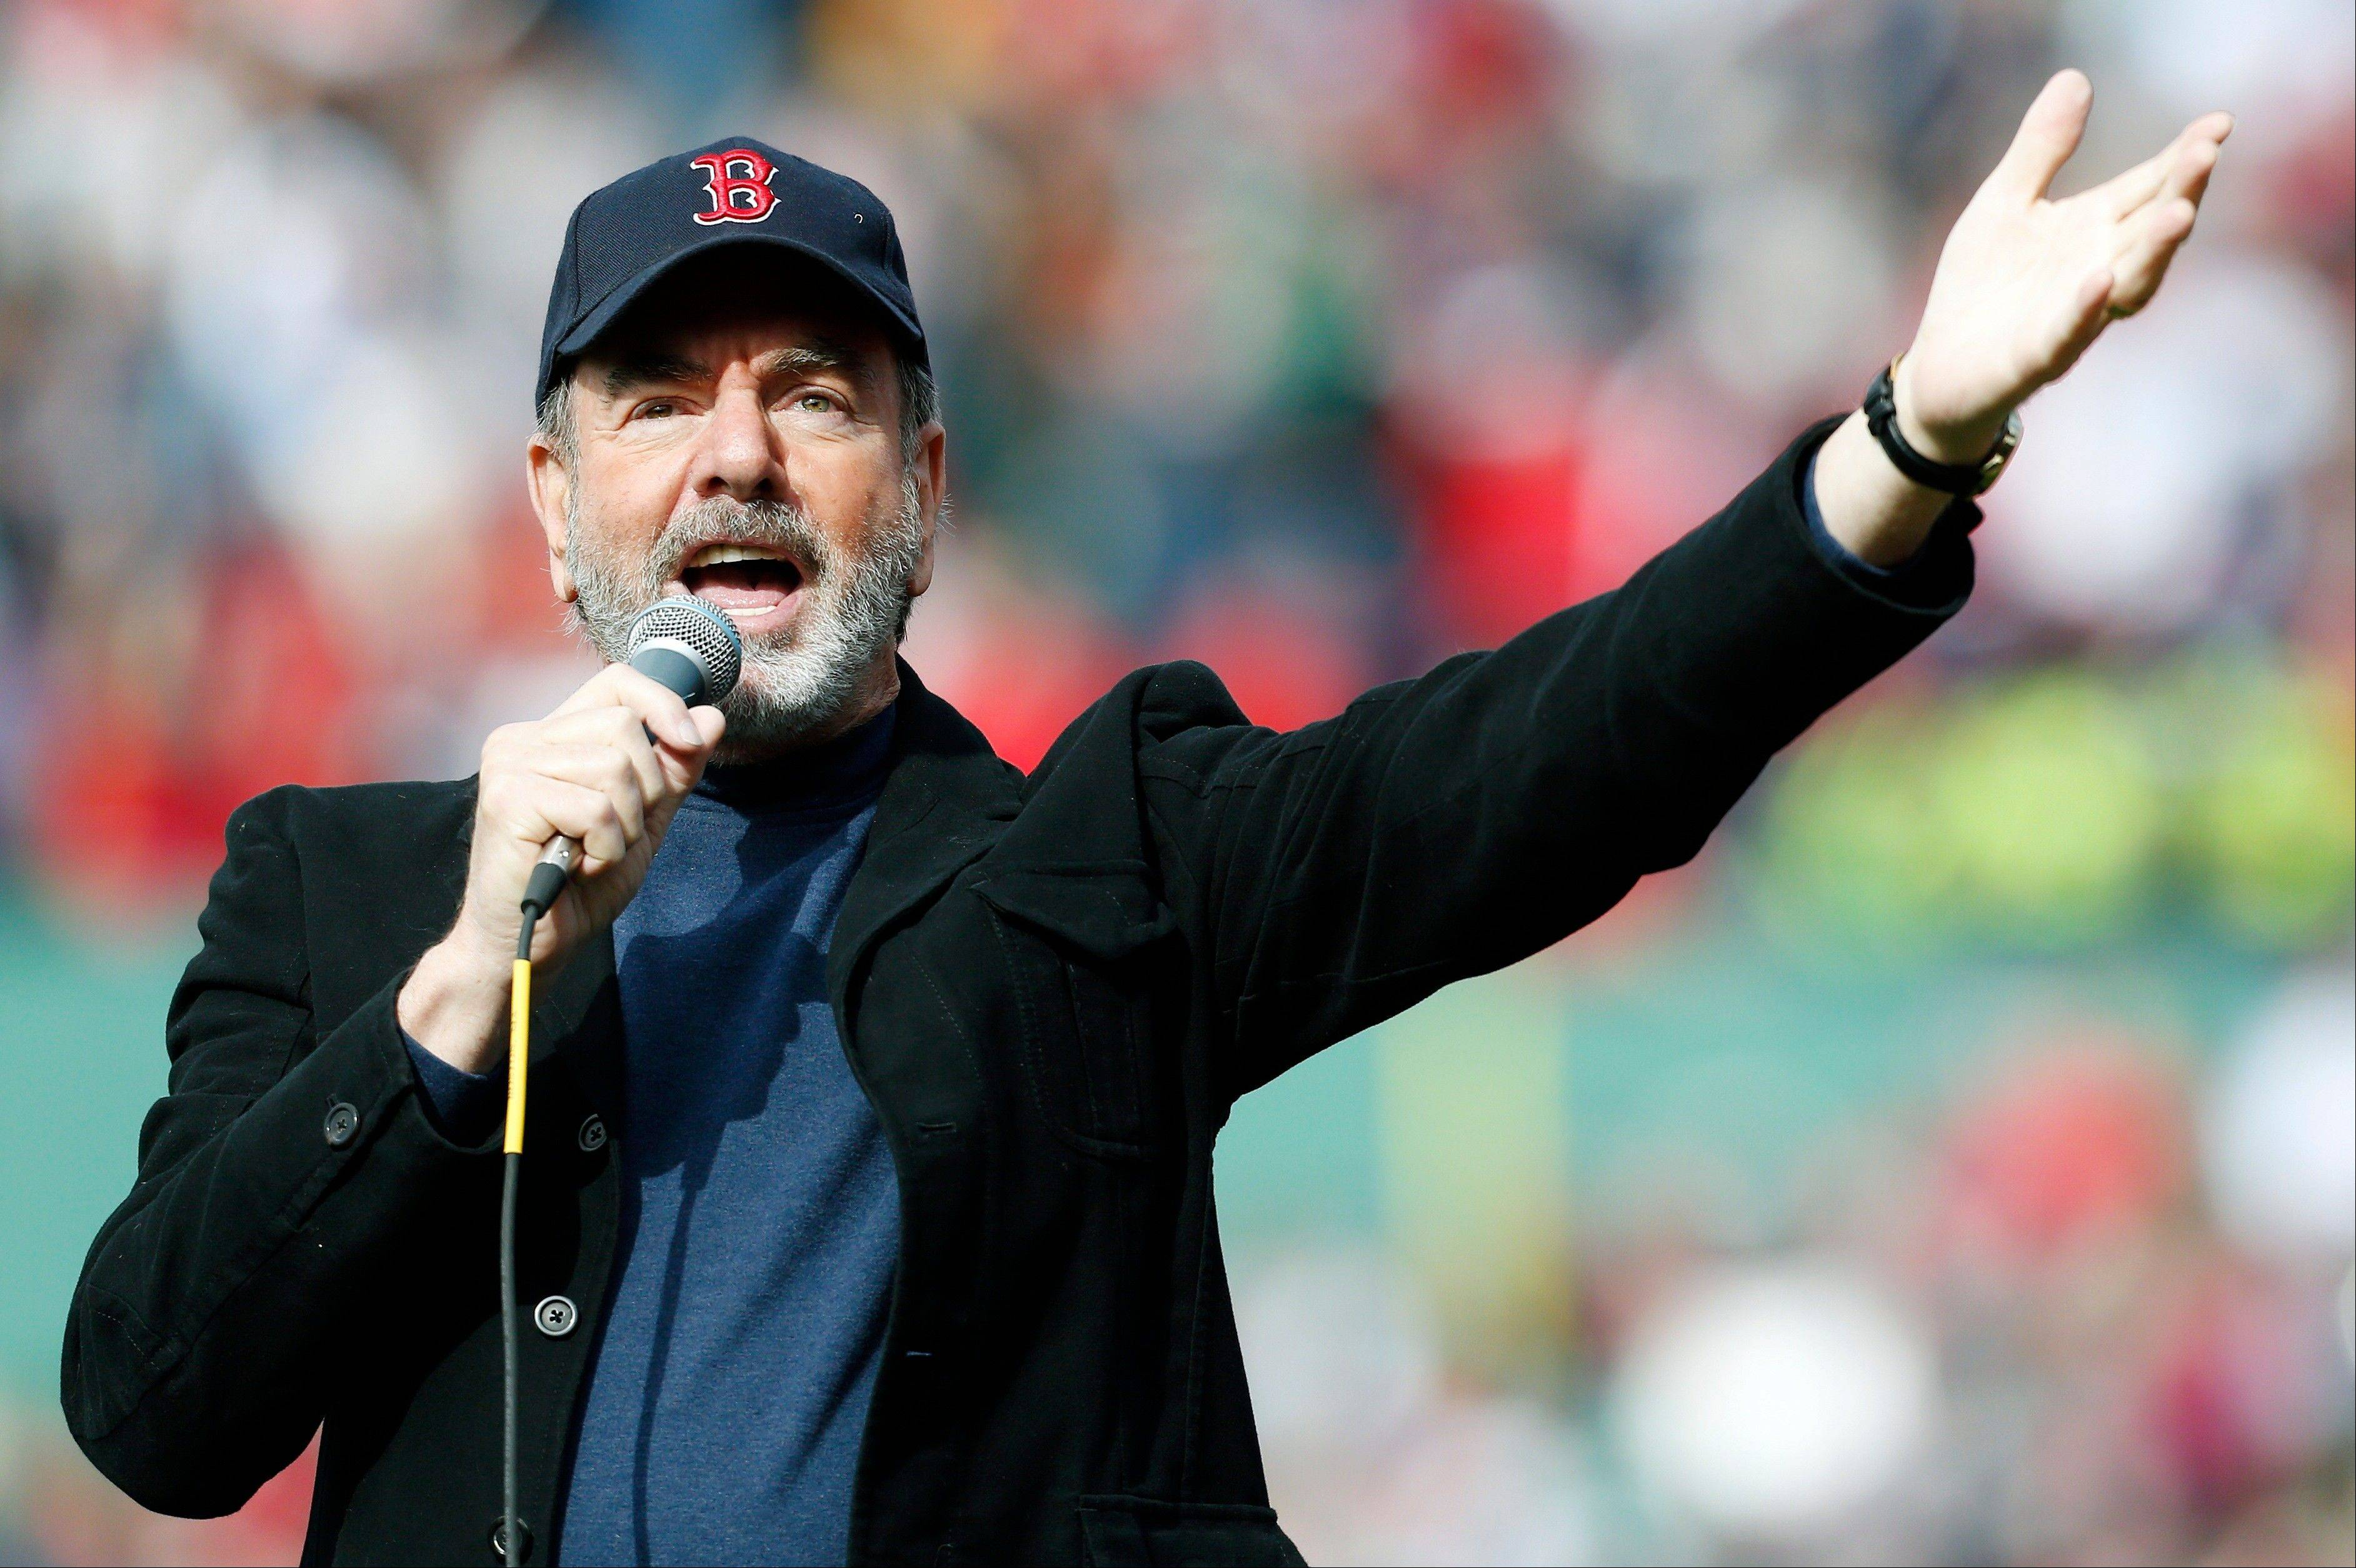 Neil Diamond sang �Sweet Caroline� in the eighth inning of last Saturday�s baseball game between the Boston Red Sox and the Kansas City Royals in Boston. Sales for Neil Diamond�s �Sweet Caroline� are up by 597 percent a week after the tune has become a source of comfort following bombings in Boston last week.